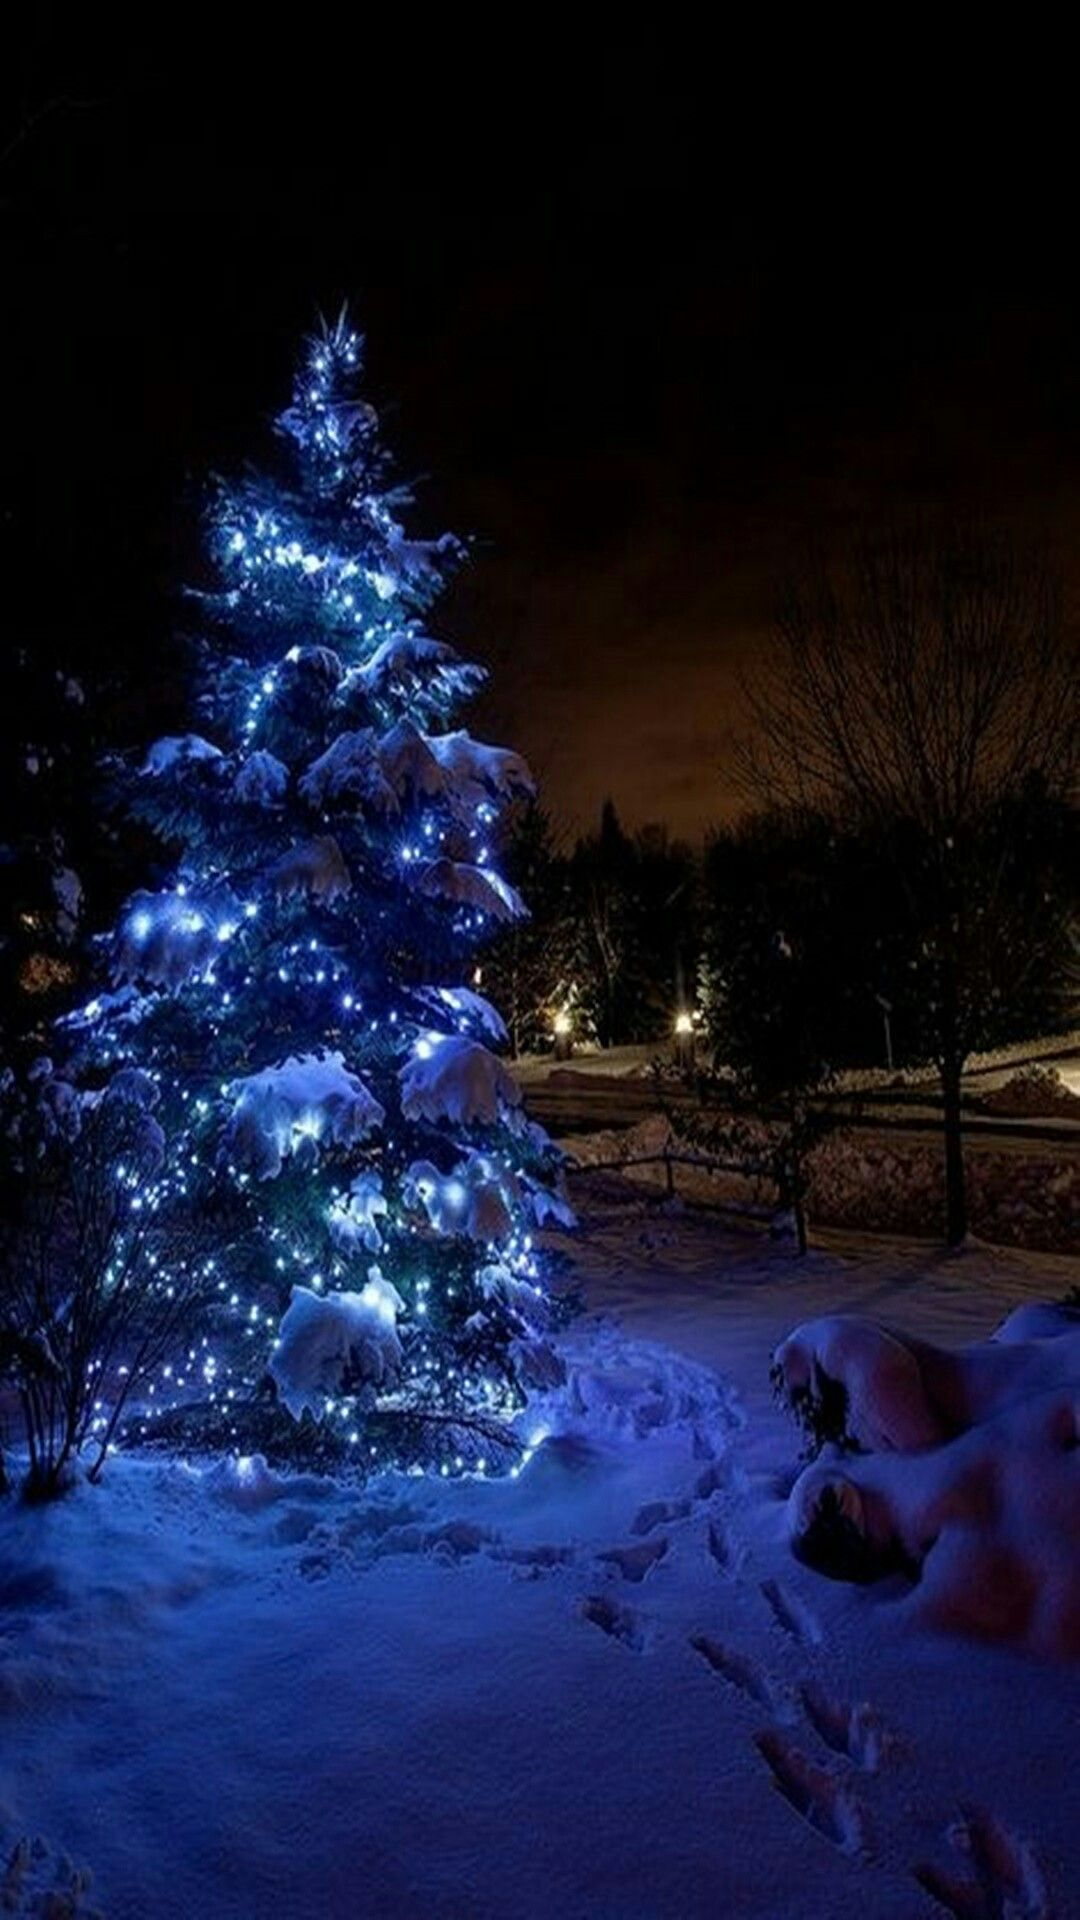 Cell Phone Wallpaper Background Christmas Night Winter